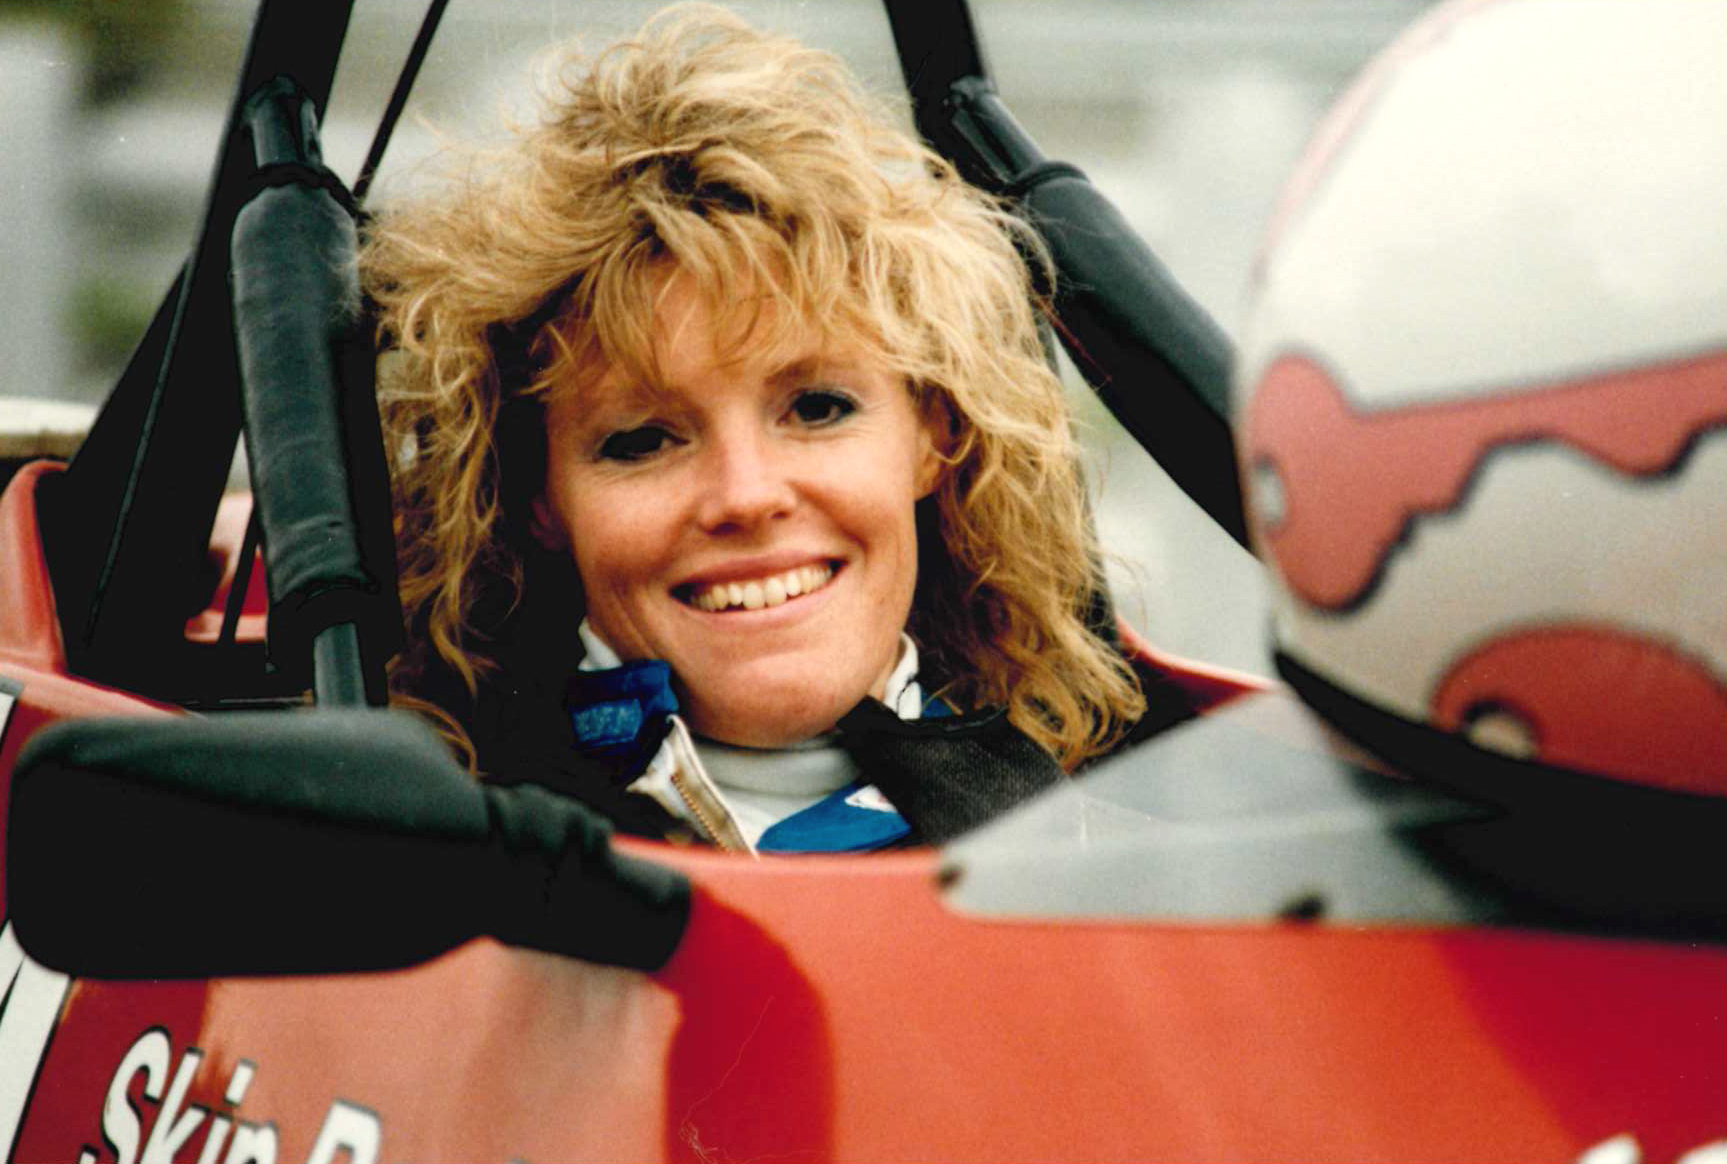 Laura Thompson Barnes, vice president, the Thompson Organization, in 1989 indulging her other passion: racing Formula Fords. This time in Lime Rock, Conn.